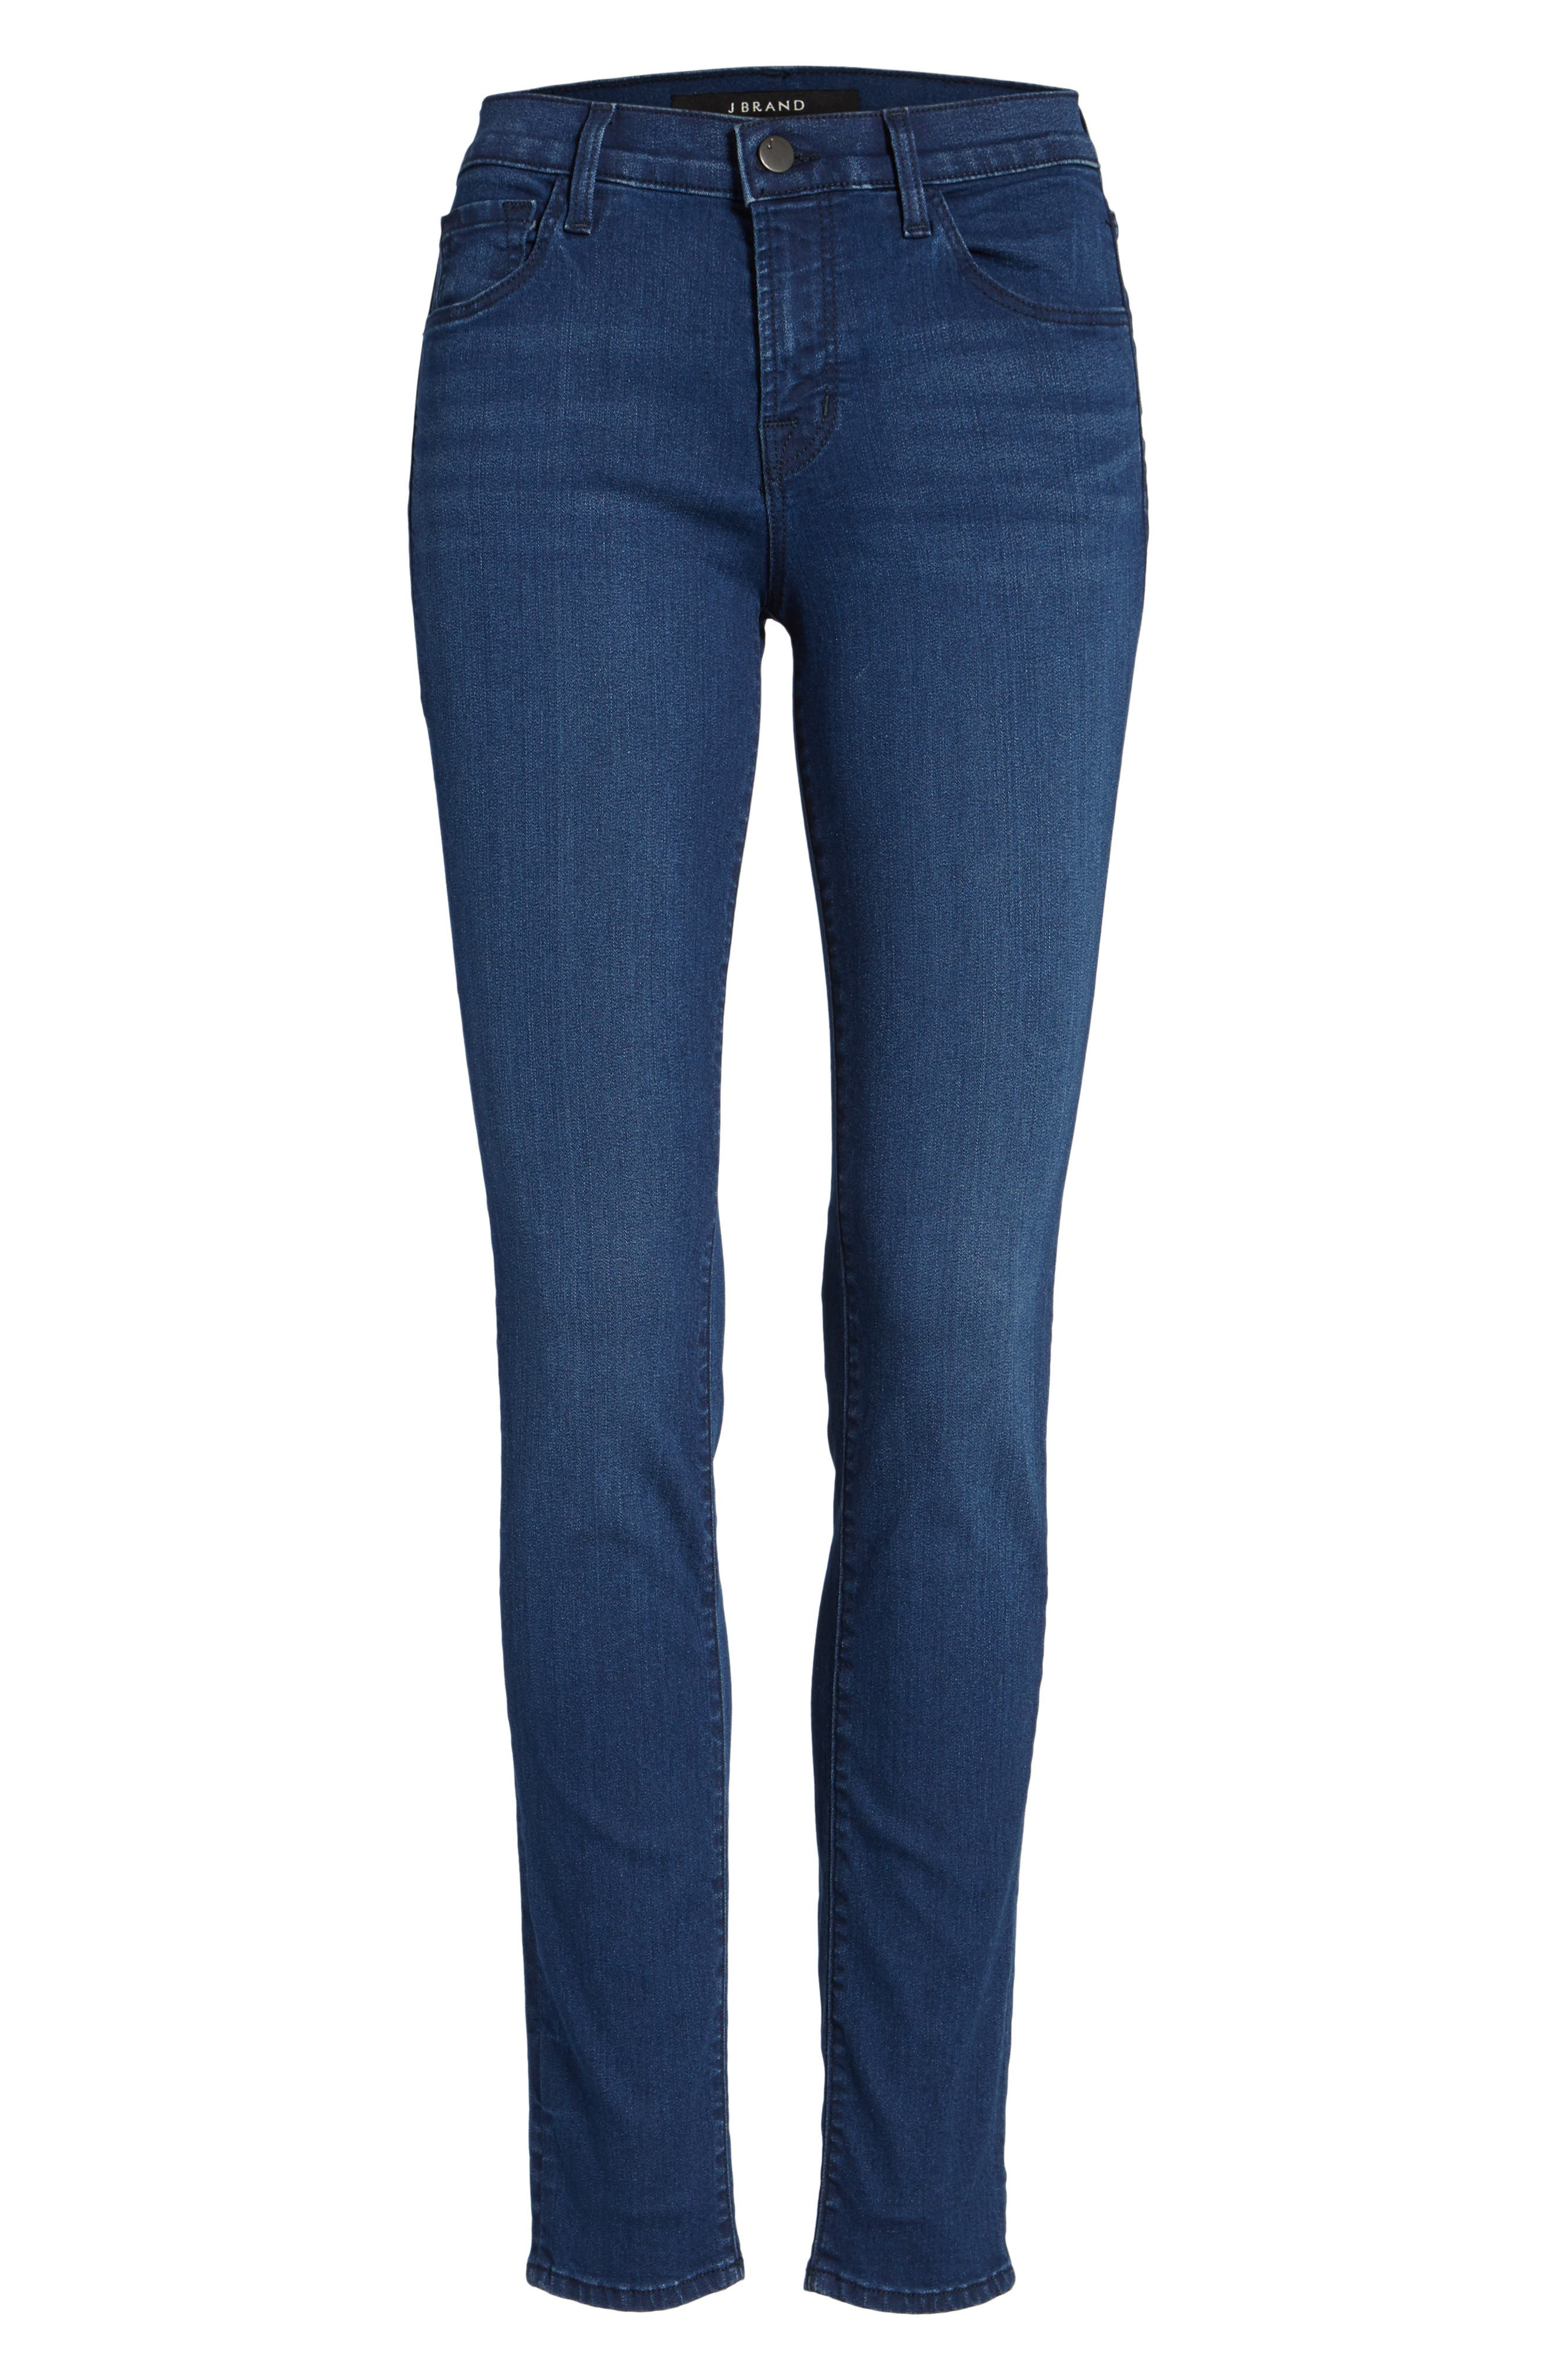 '811' Ankle Skinny Jeans,                             Alternate thumbnail 6, color,                             Sway